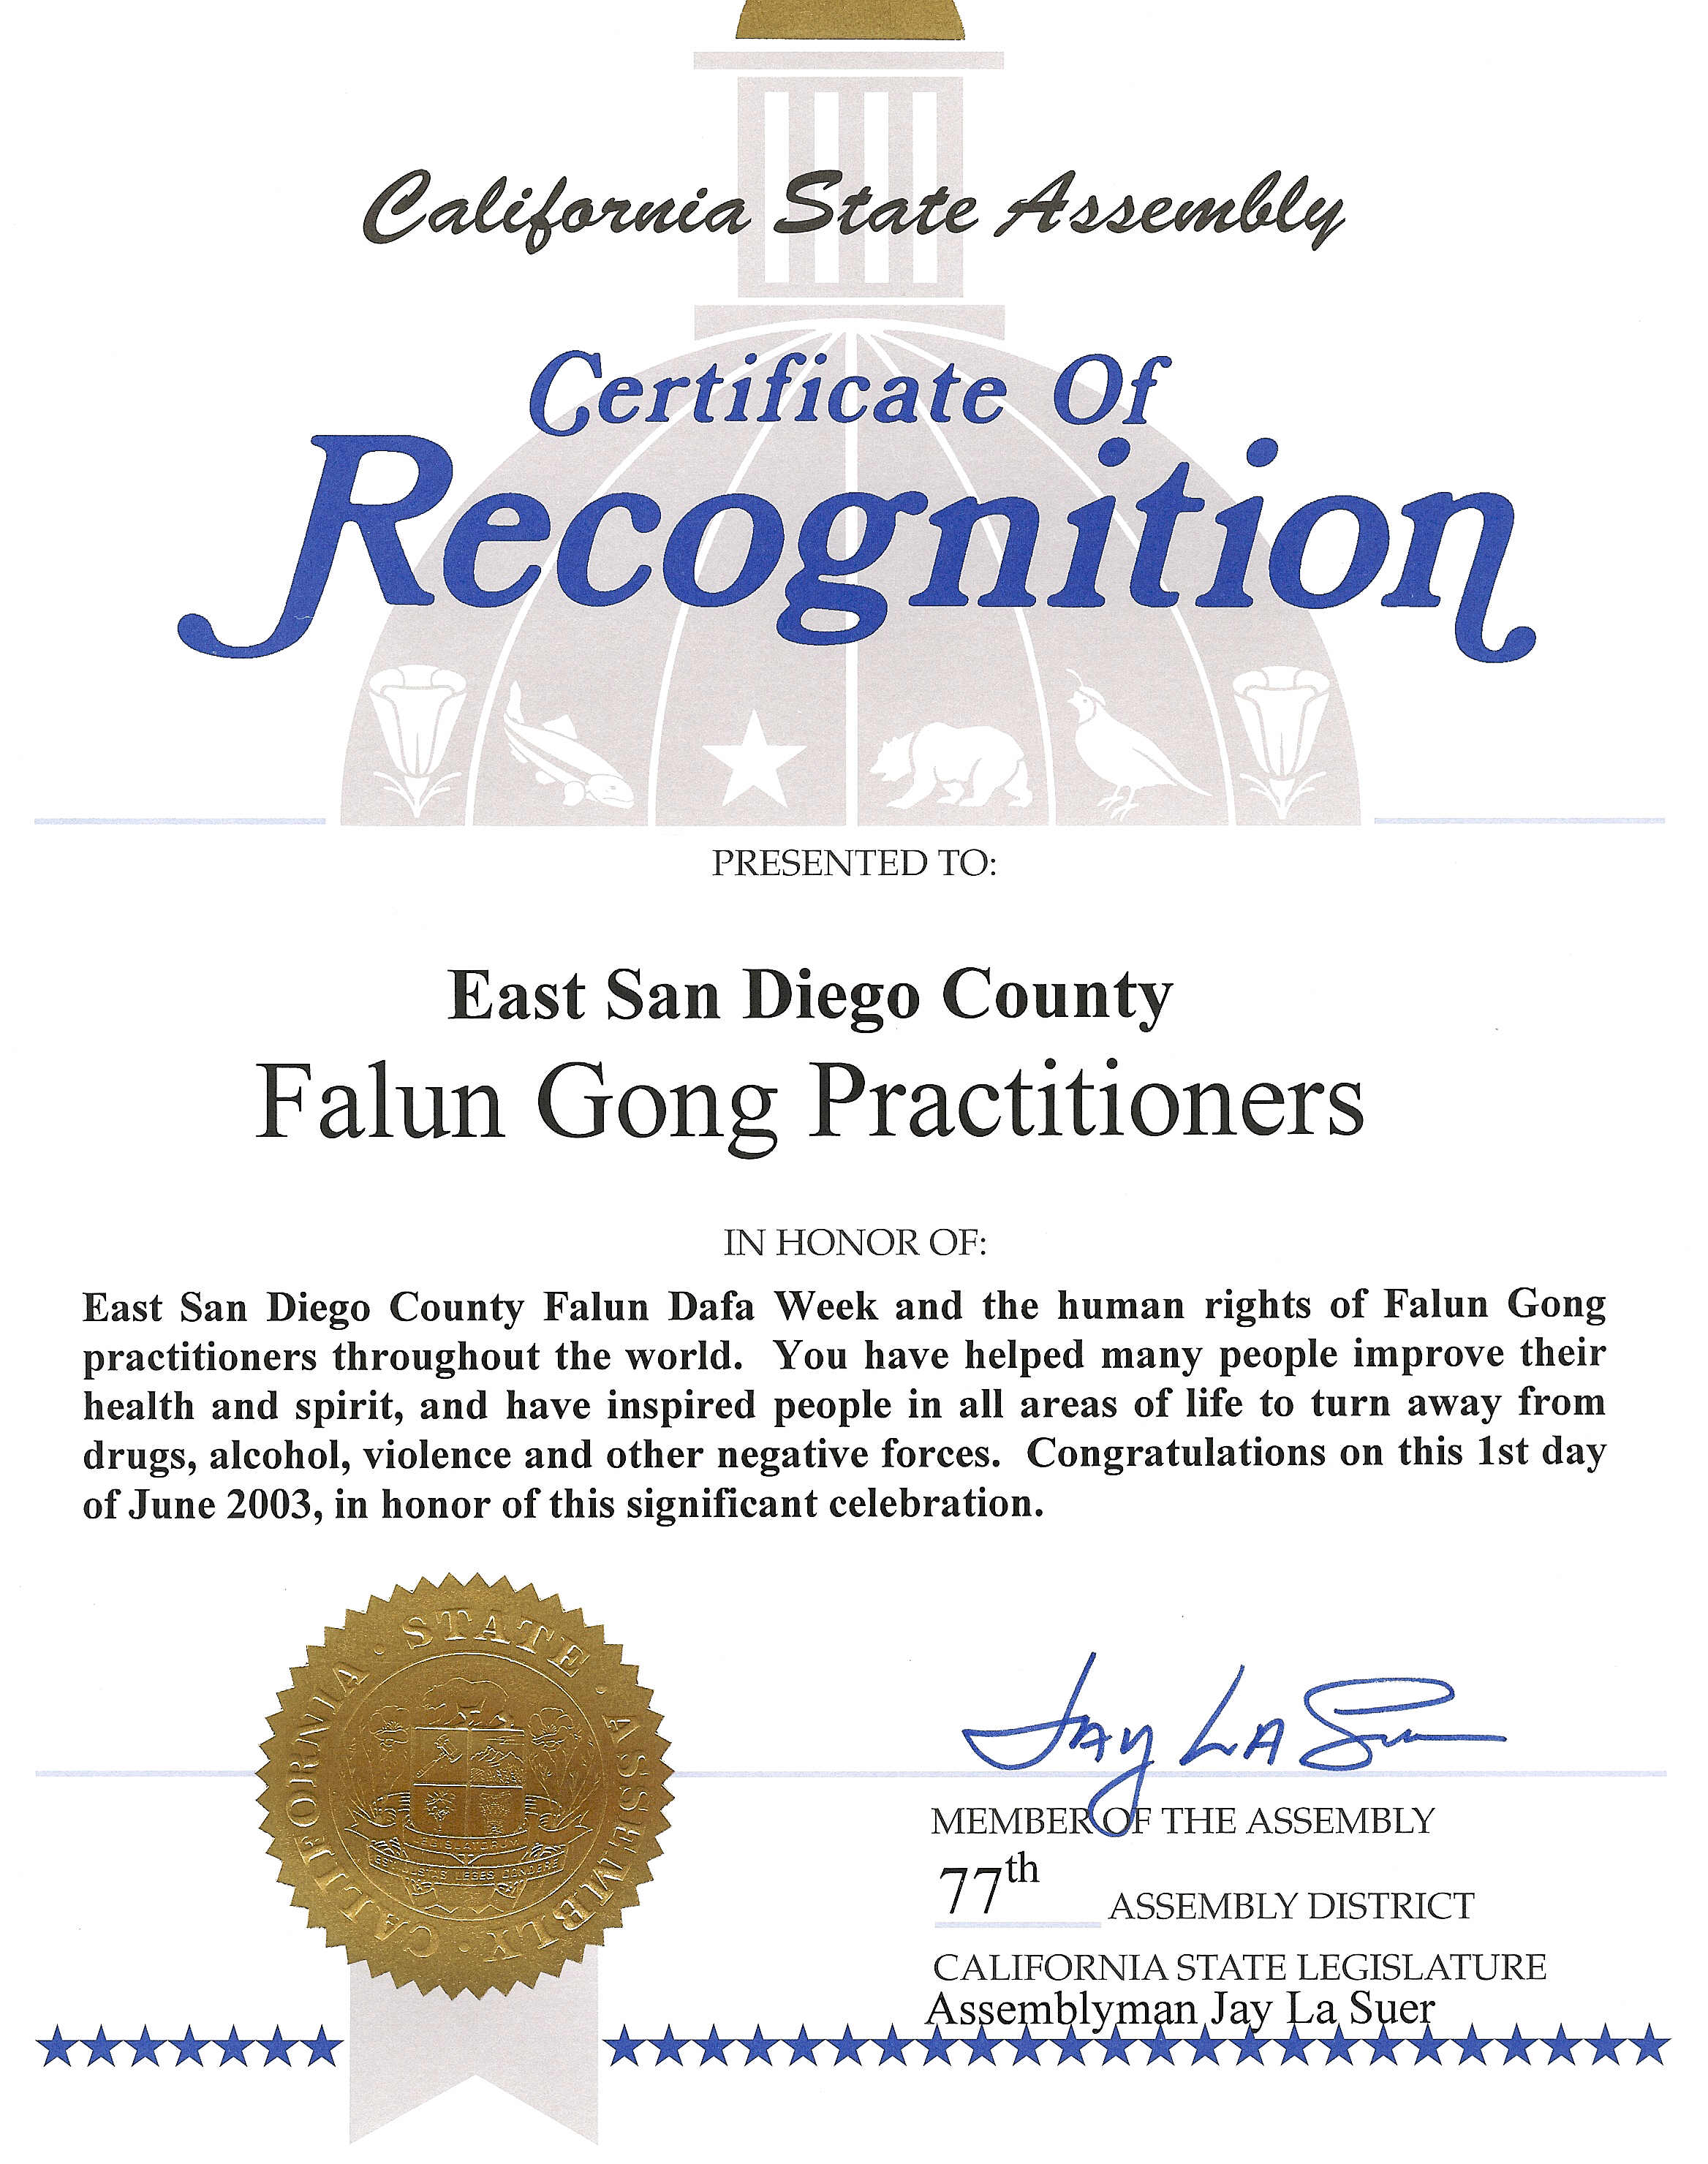 Certificate of recognition in honor of east san diego county falun certificate of recognition in honor of east san diego county falun dafa week by california state of assembly june 1 2003 yadclub Gallery